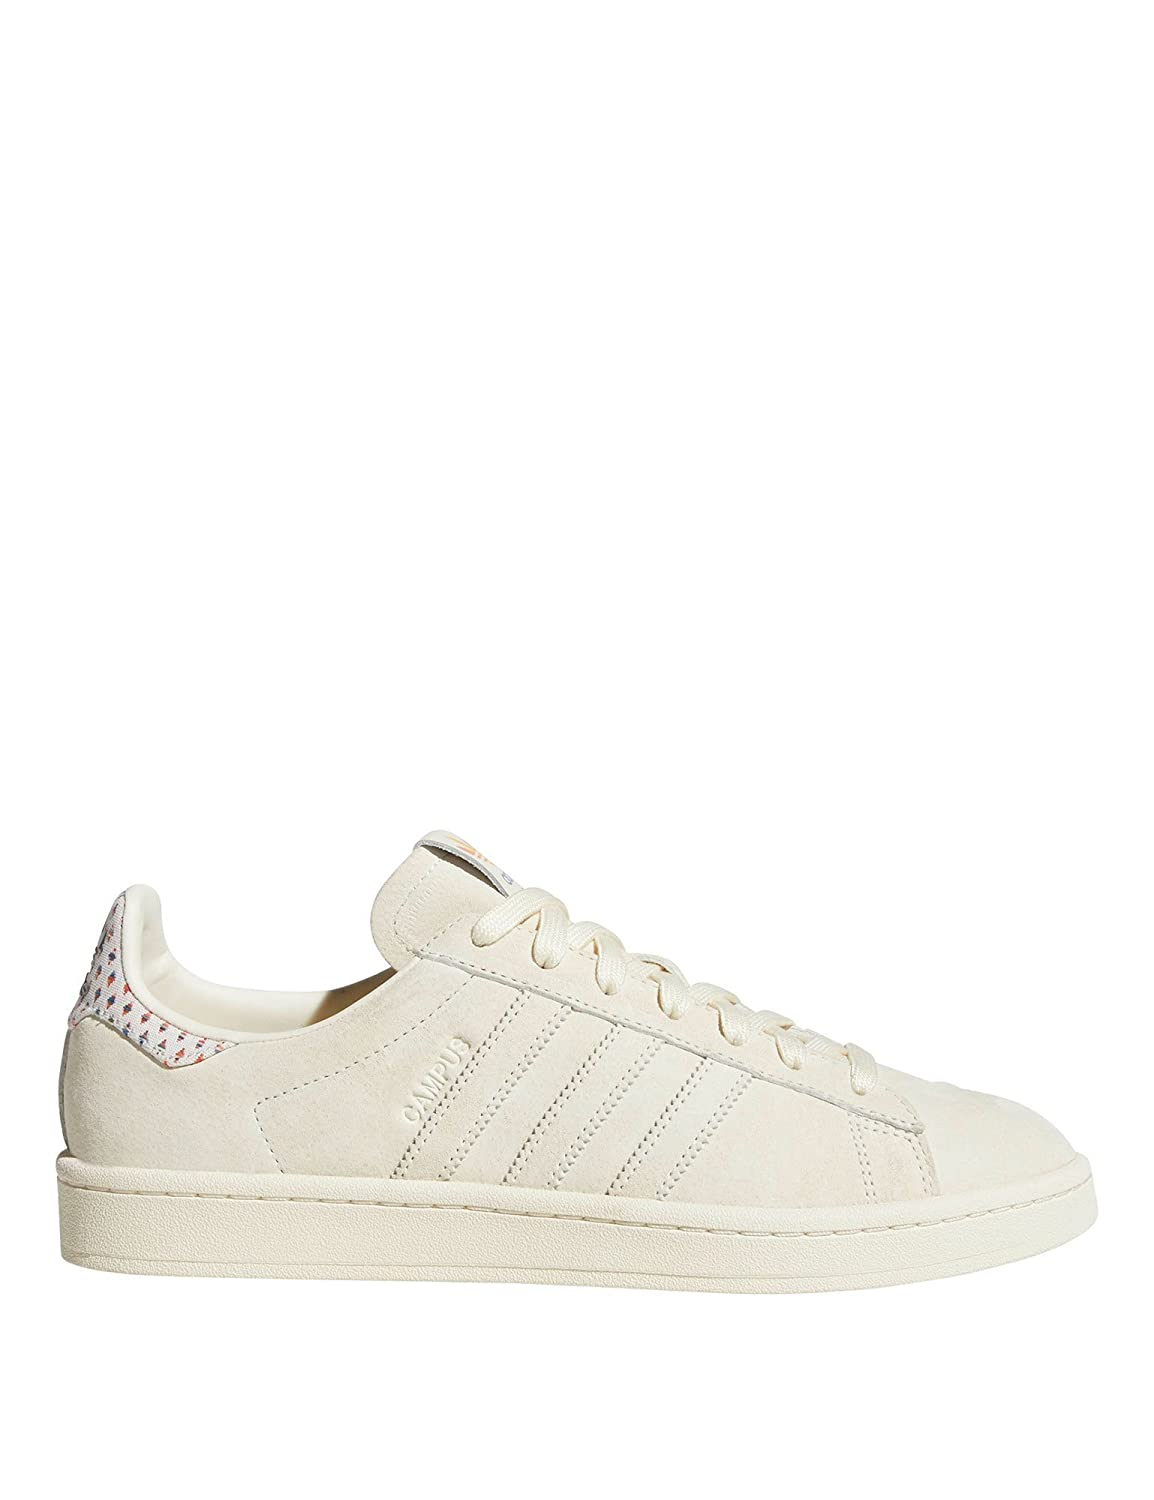 adidas Originals CAMPUS PRIDE Trainers cream whitetrace